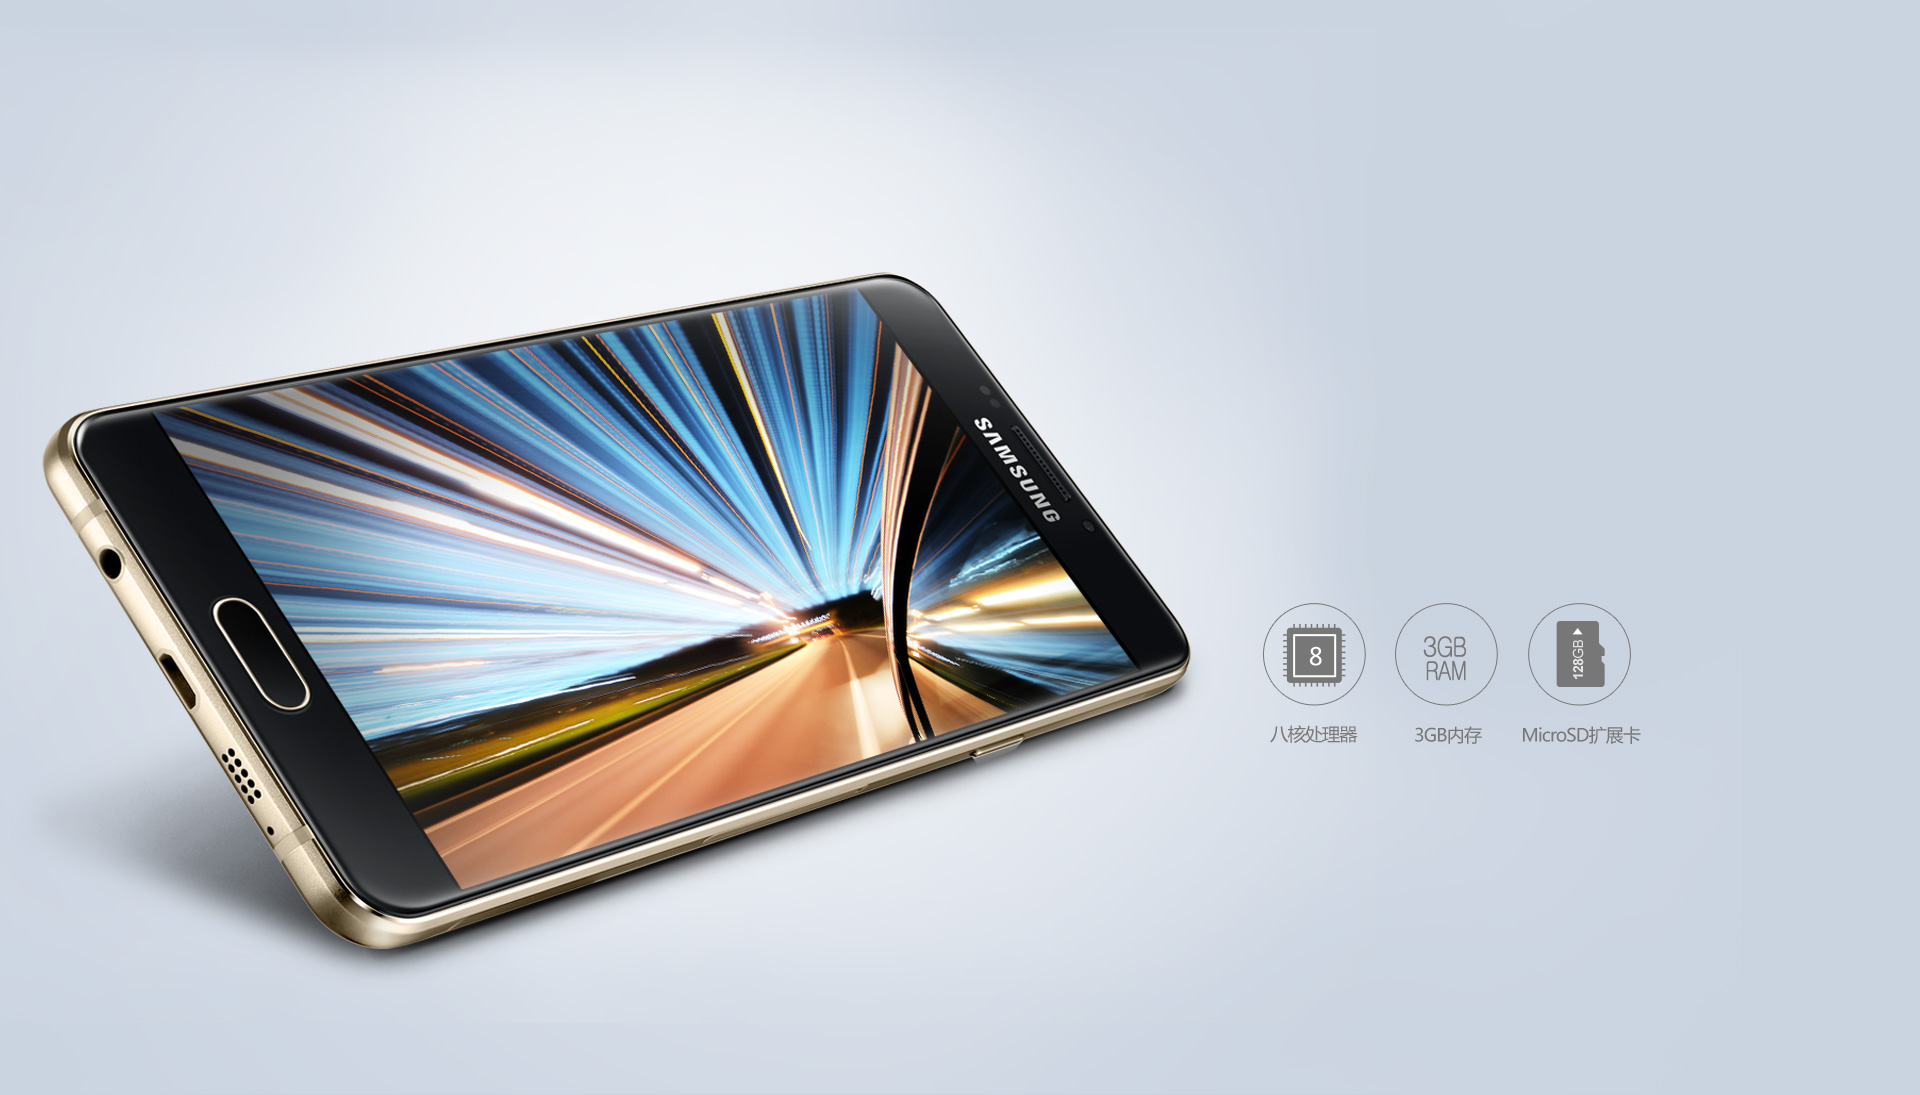 Other Than The Screen Size Being Larger Life Samsung Galaxy A9 Is Stuffed With A Mammoth Of Battery At 4000mAh Giving An Expectation One And